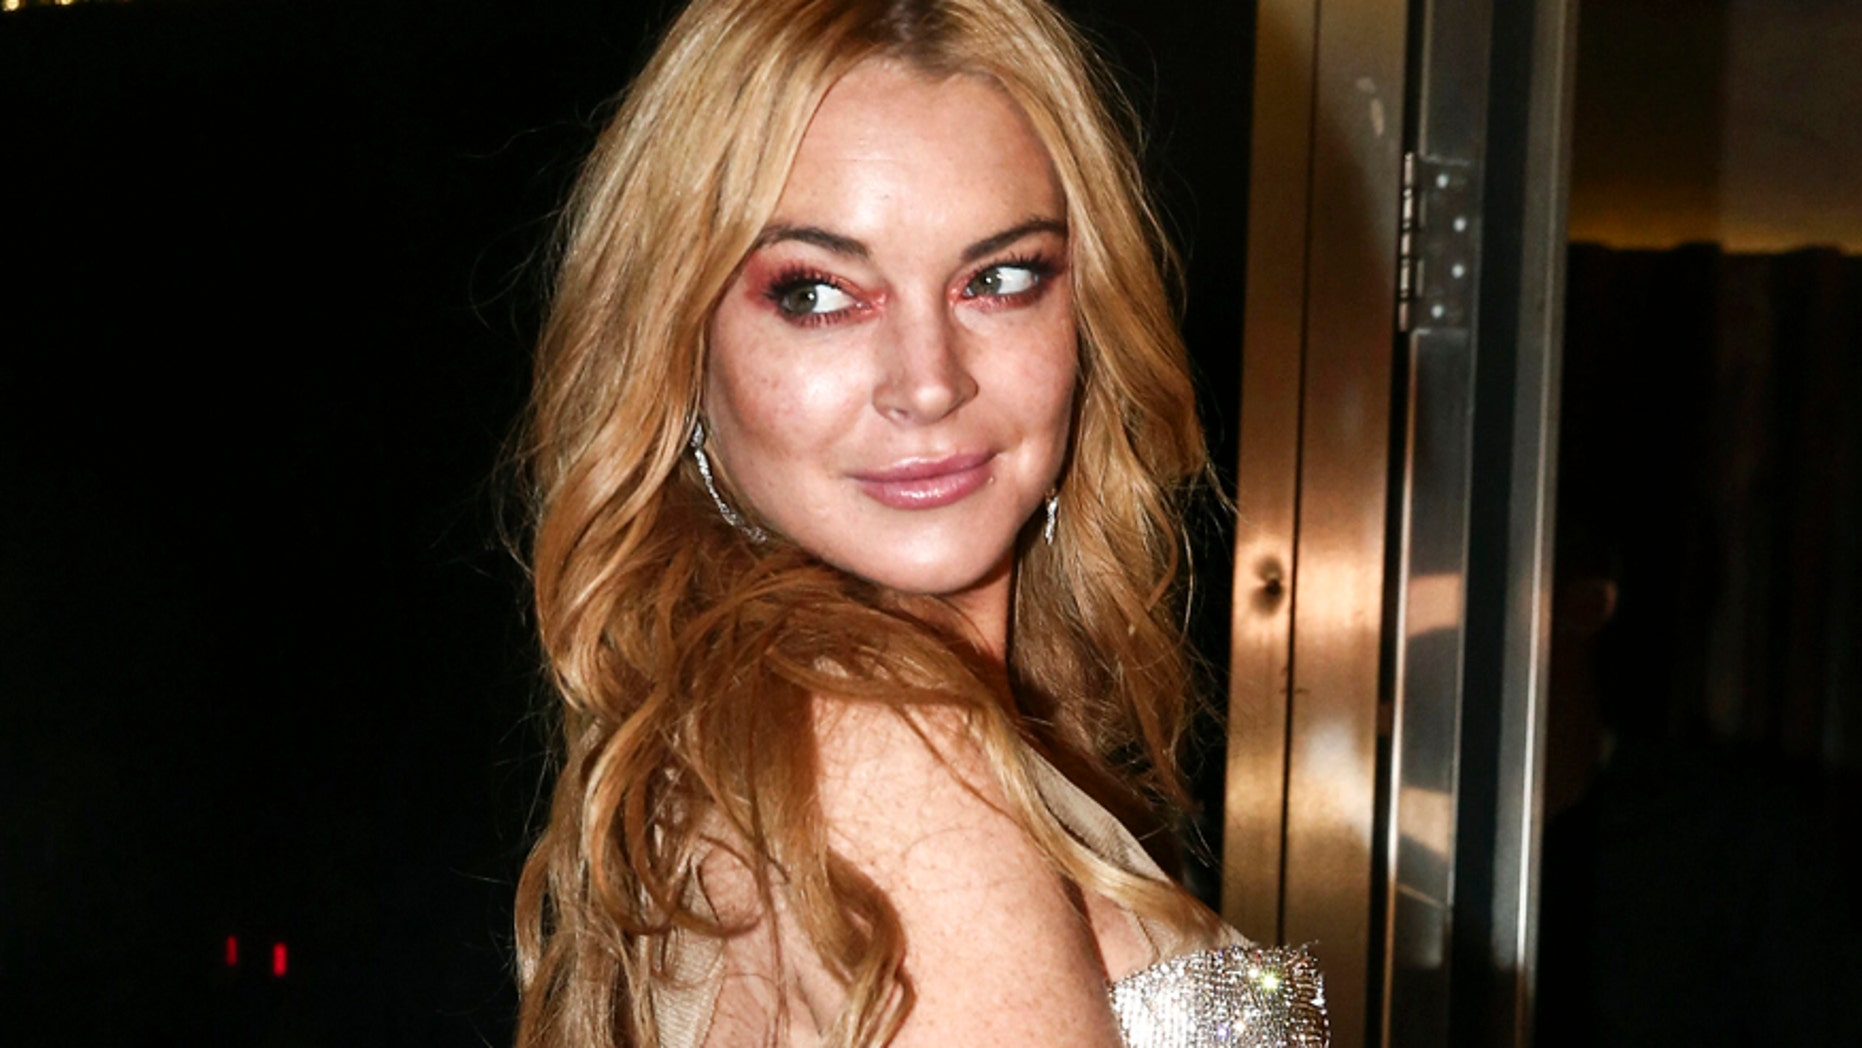 Lindsay Lohan owe back taxes to the government. Here the actress poses for photos at the entrance of the Lohan Nightclub  in Athens, Greece, October 2016.